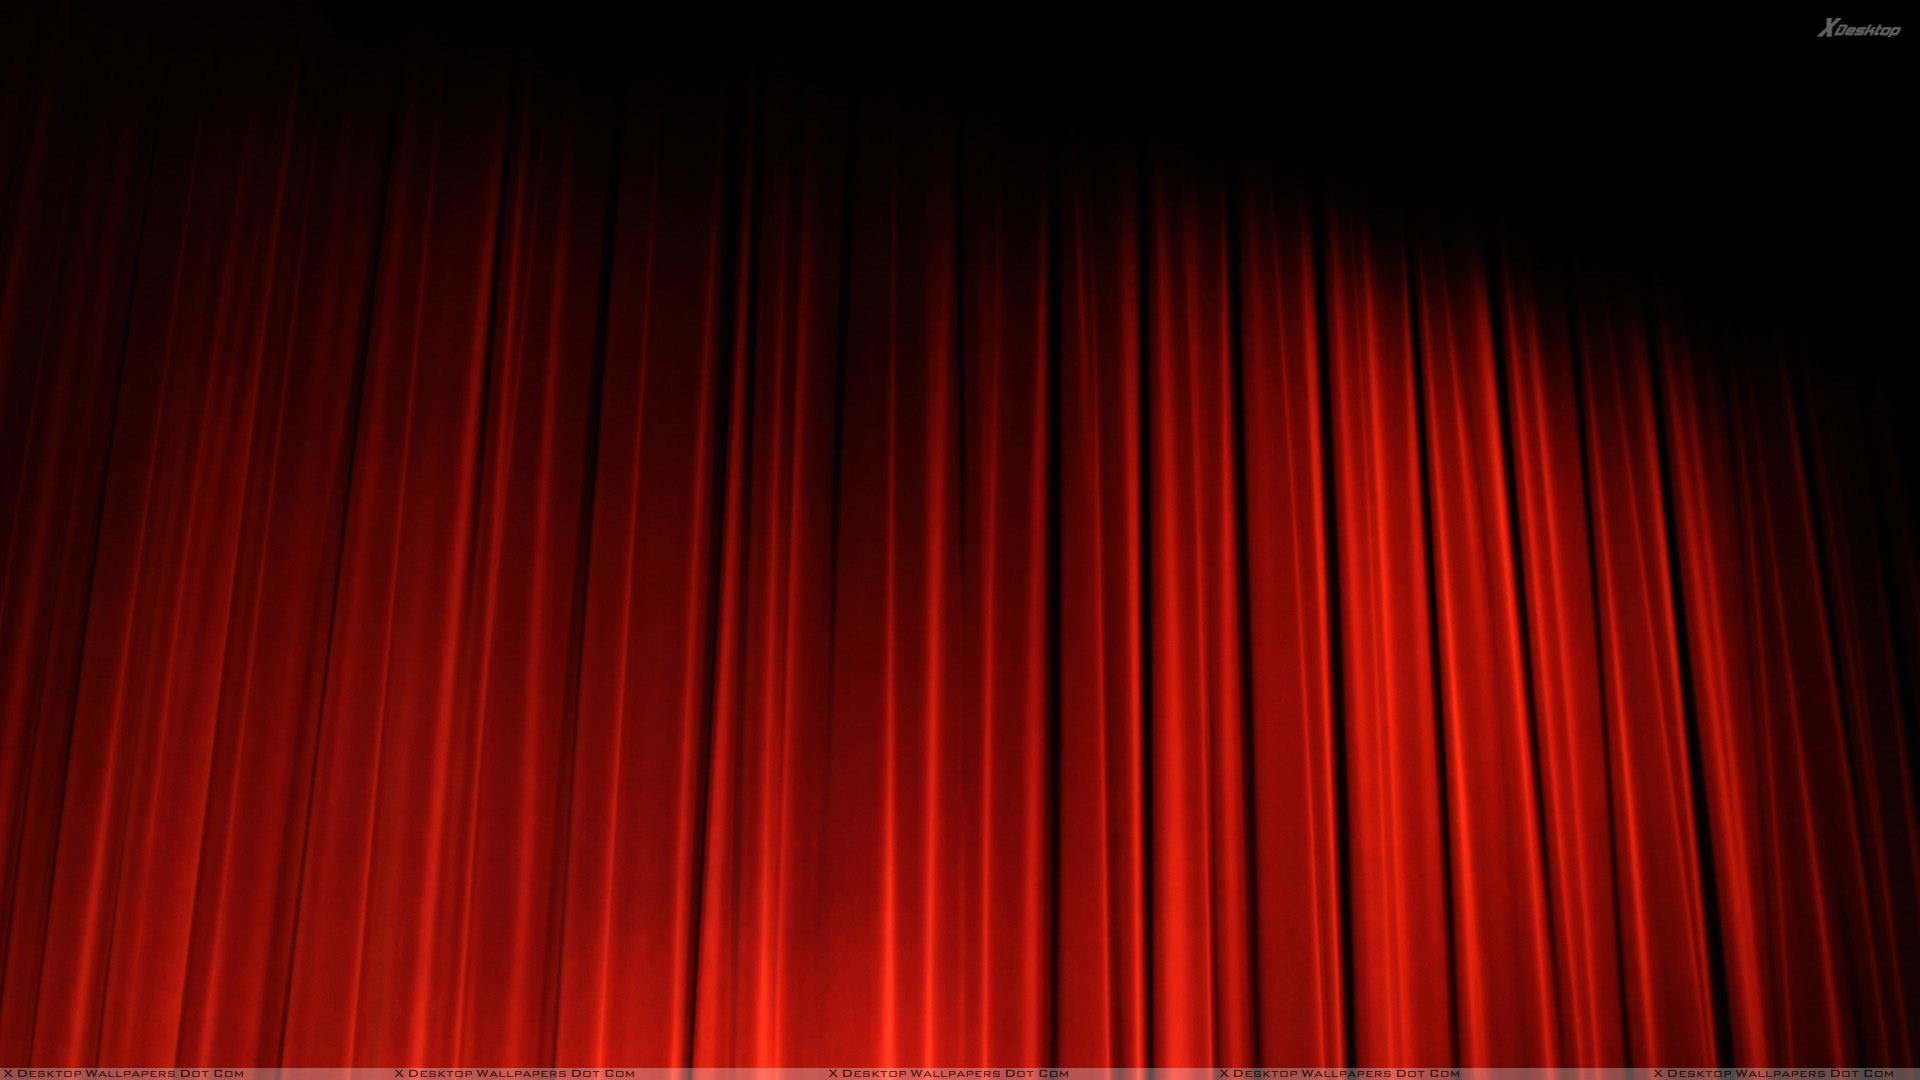 red curtain in cinema wallpaper